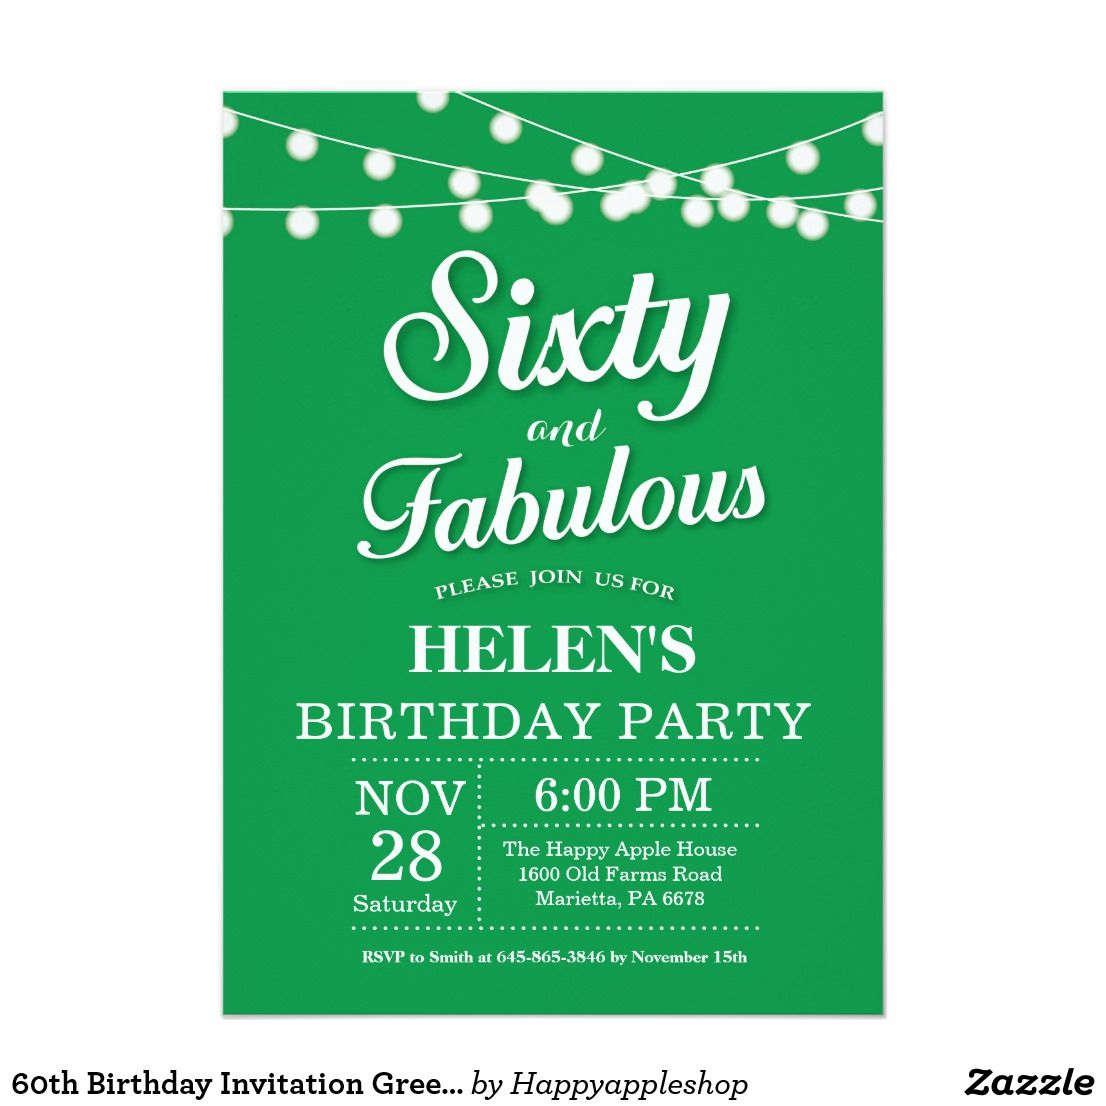 60th Birthday Invitation Green Fabulous | Zazzle.com | 40th birthday  invitations, 50th birthday invitations, 60th birthday invitations